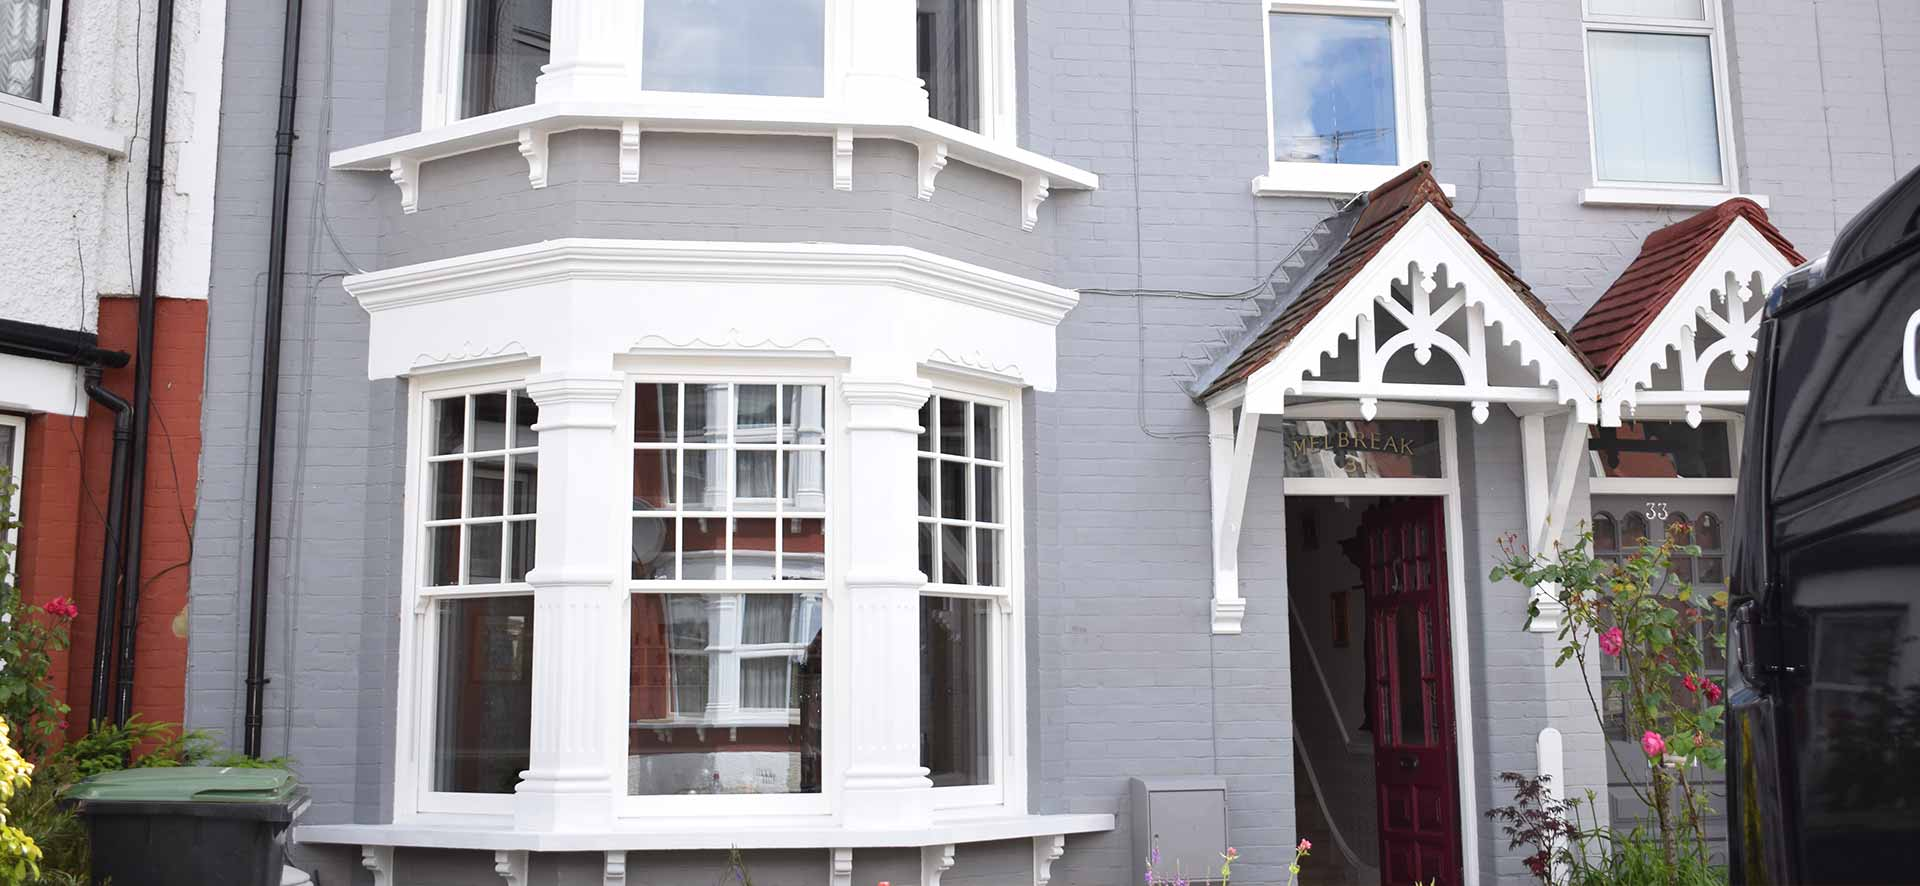 What Makes An Authentic Sash Window